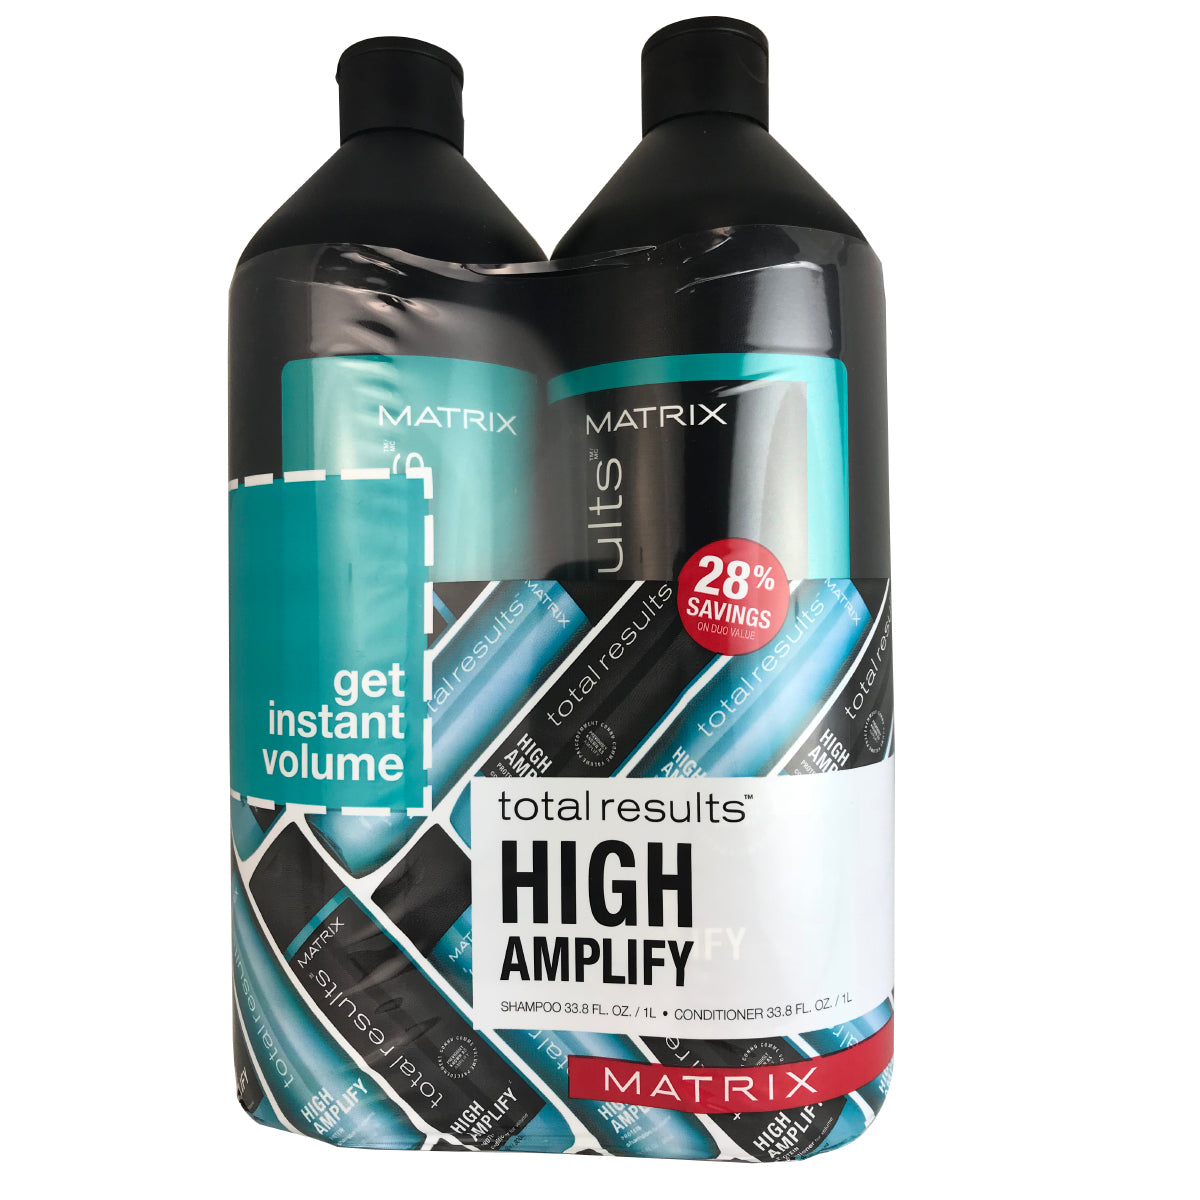 Matrix High Amplify Hair Shampoo and Conditioner Duo 33.8 oz Each